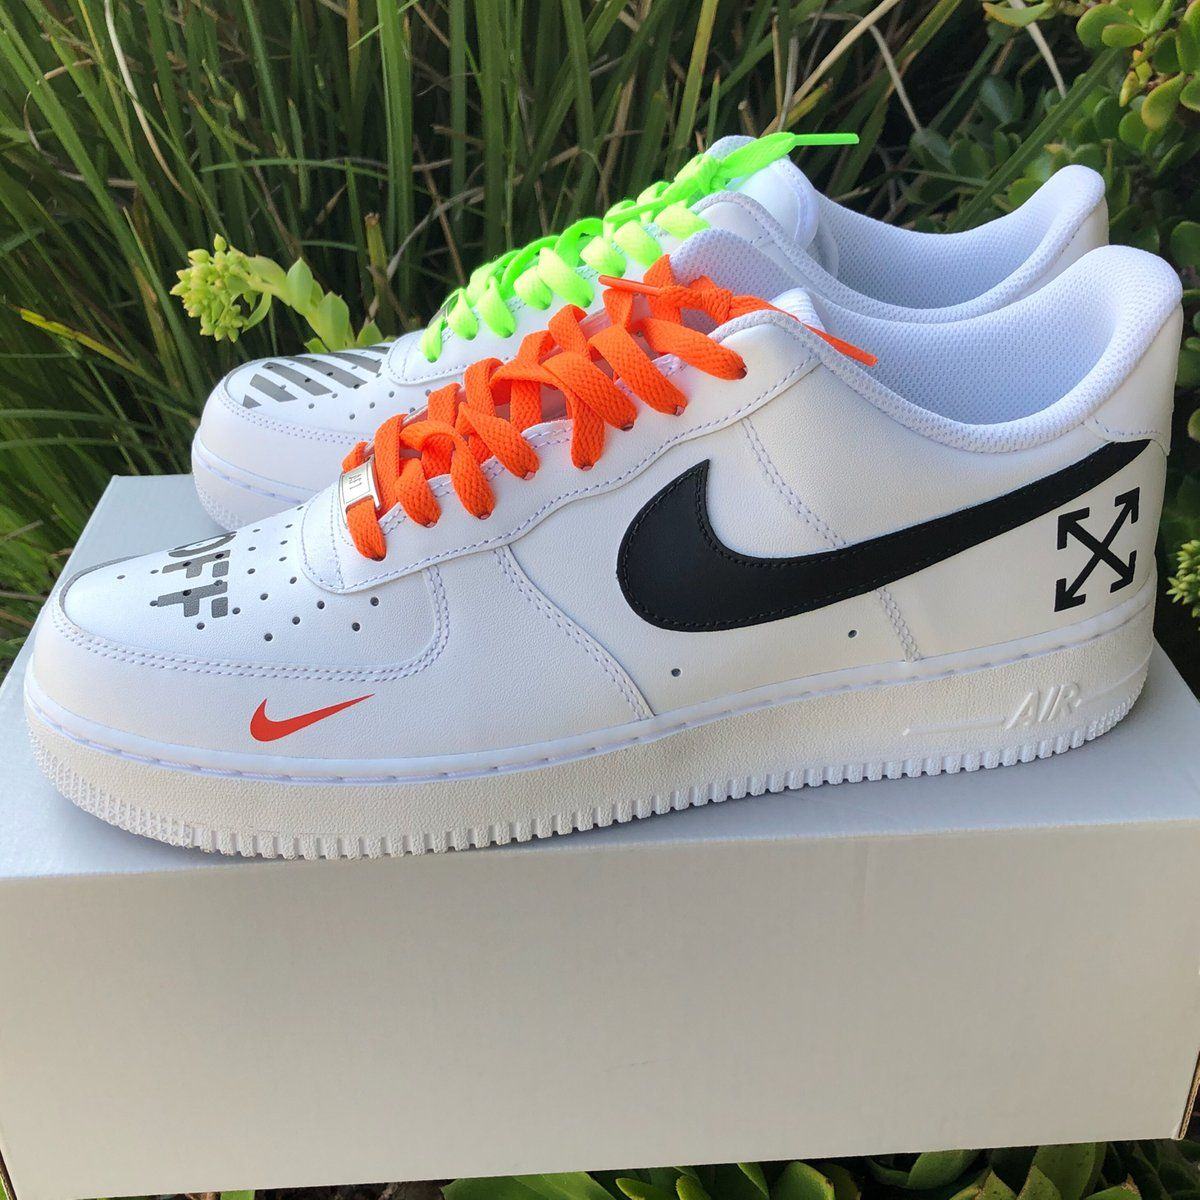 2air force 1 custom of white